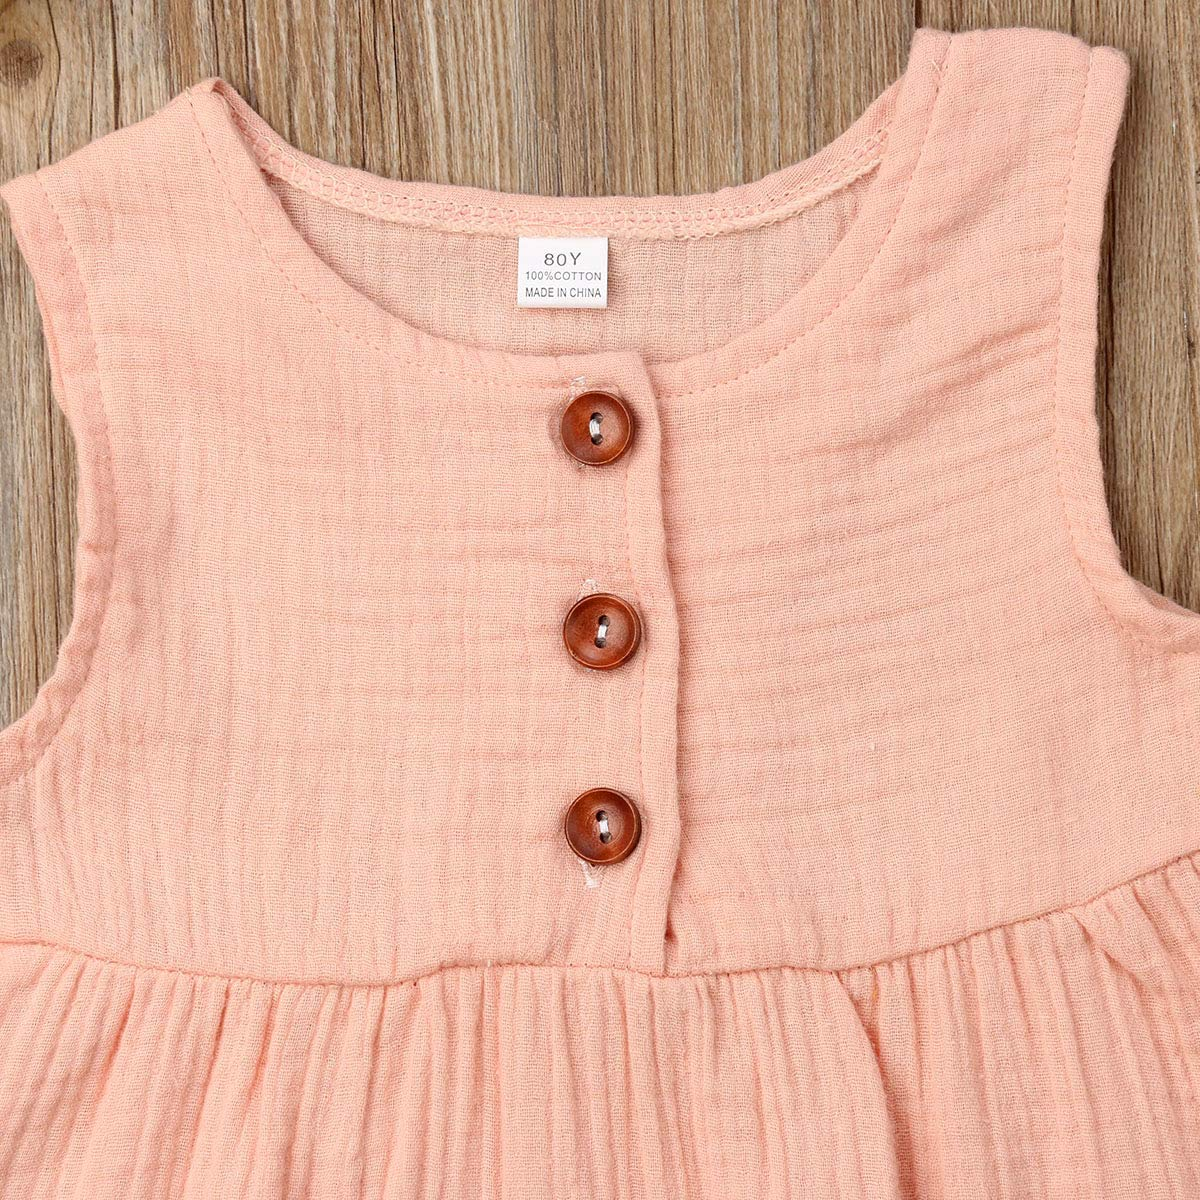 Gogoboi Baby Girl Clothes Solid Color Sleeveless Tank Tops Ruffle Sunsuit Outfit Casual Tees 0-24M